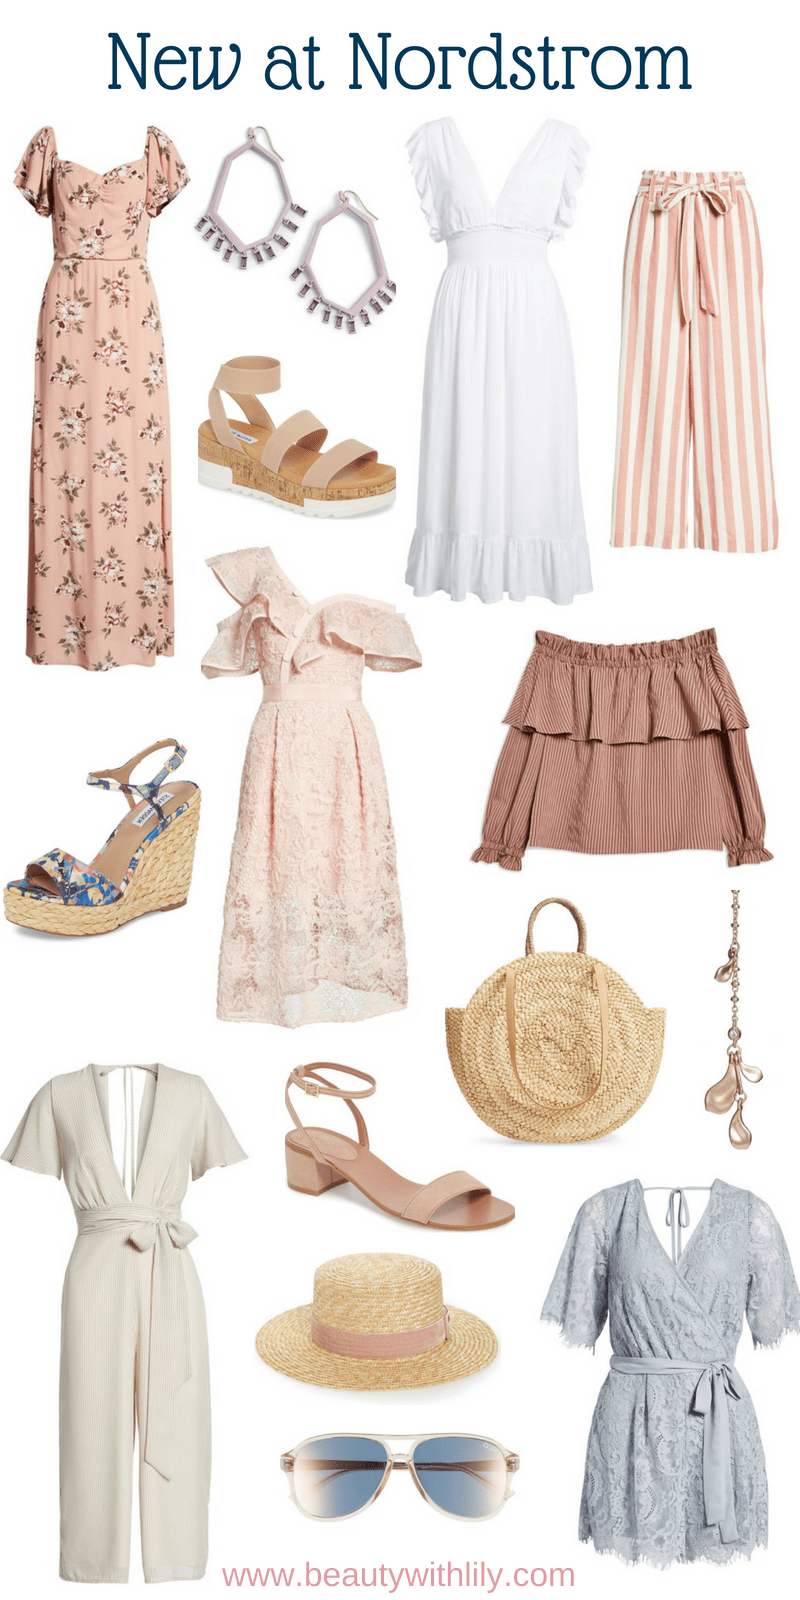 New At Nordstrom // New Nordstrom Arrivals // Summer Fashion // Spring Fashion | Beauty With Lily #summerfashion #nordstrom